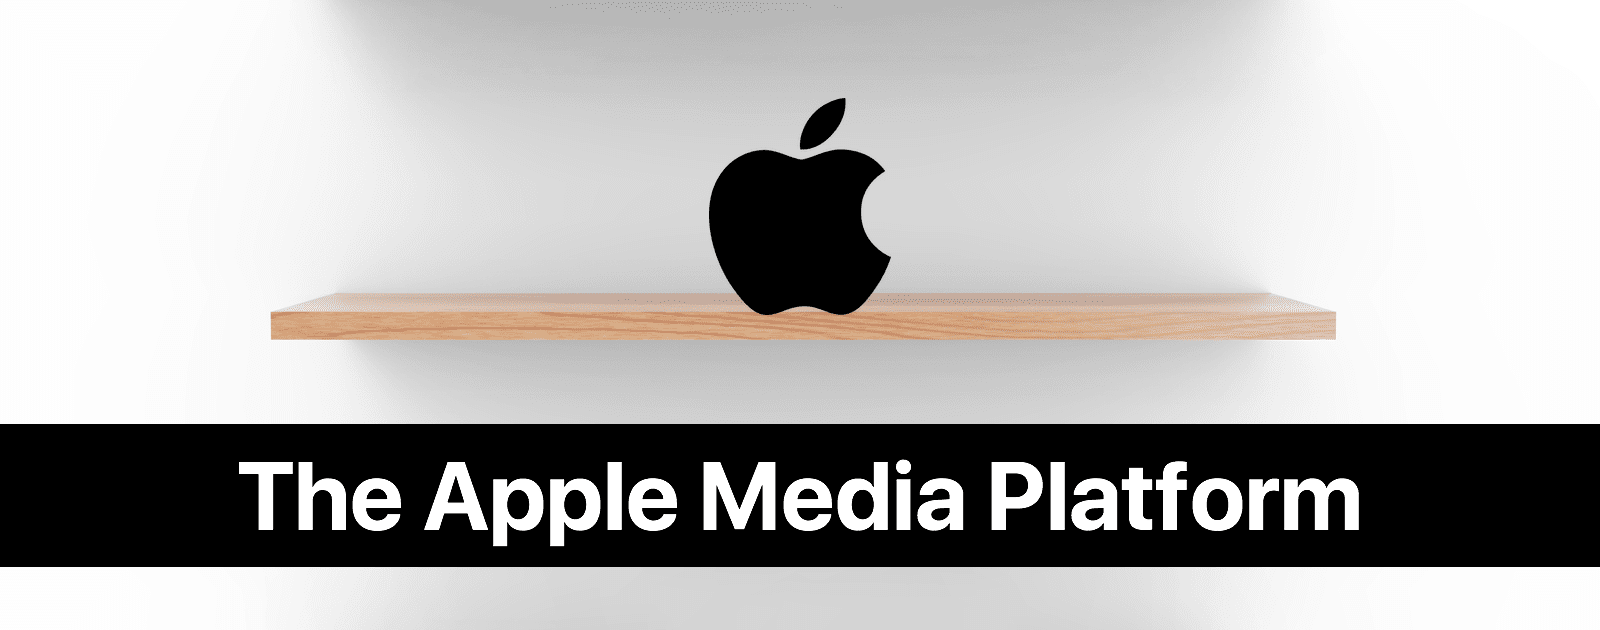 Grand Unified Theory of the Apple Media Platform